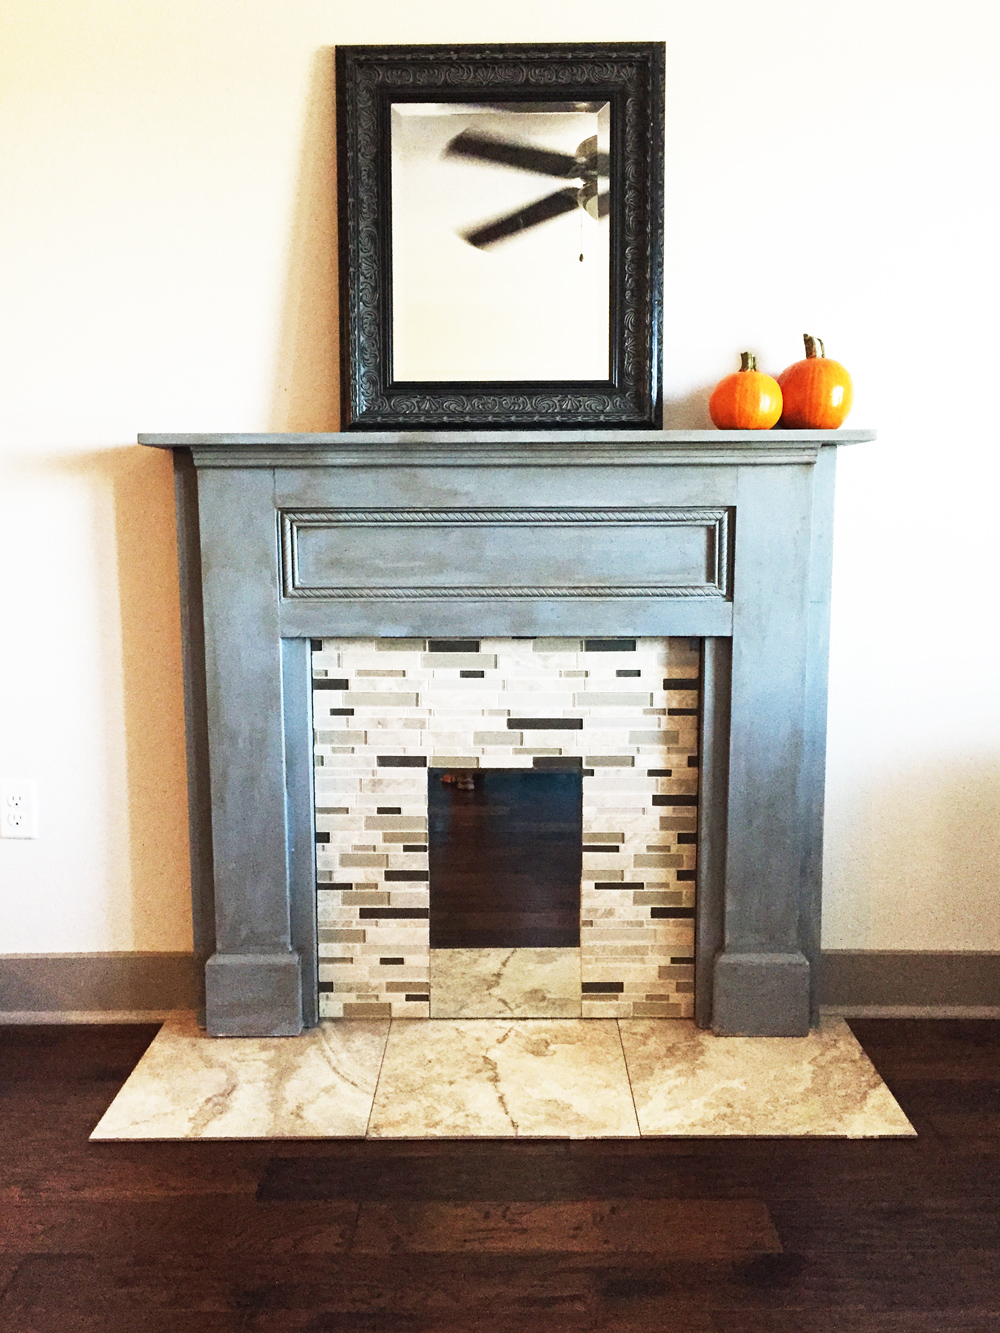 How To Build Your Own Diy Fireplace Mantel How To Build It